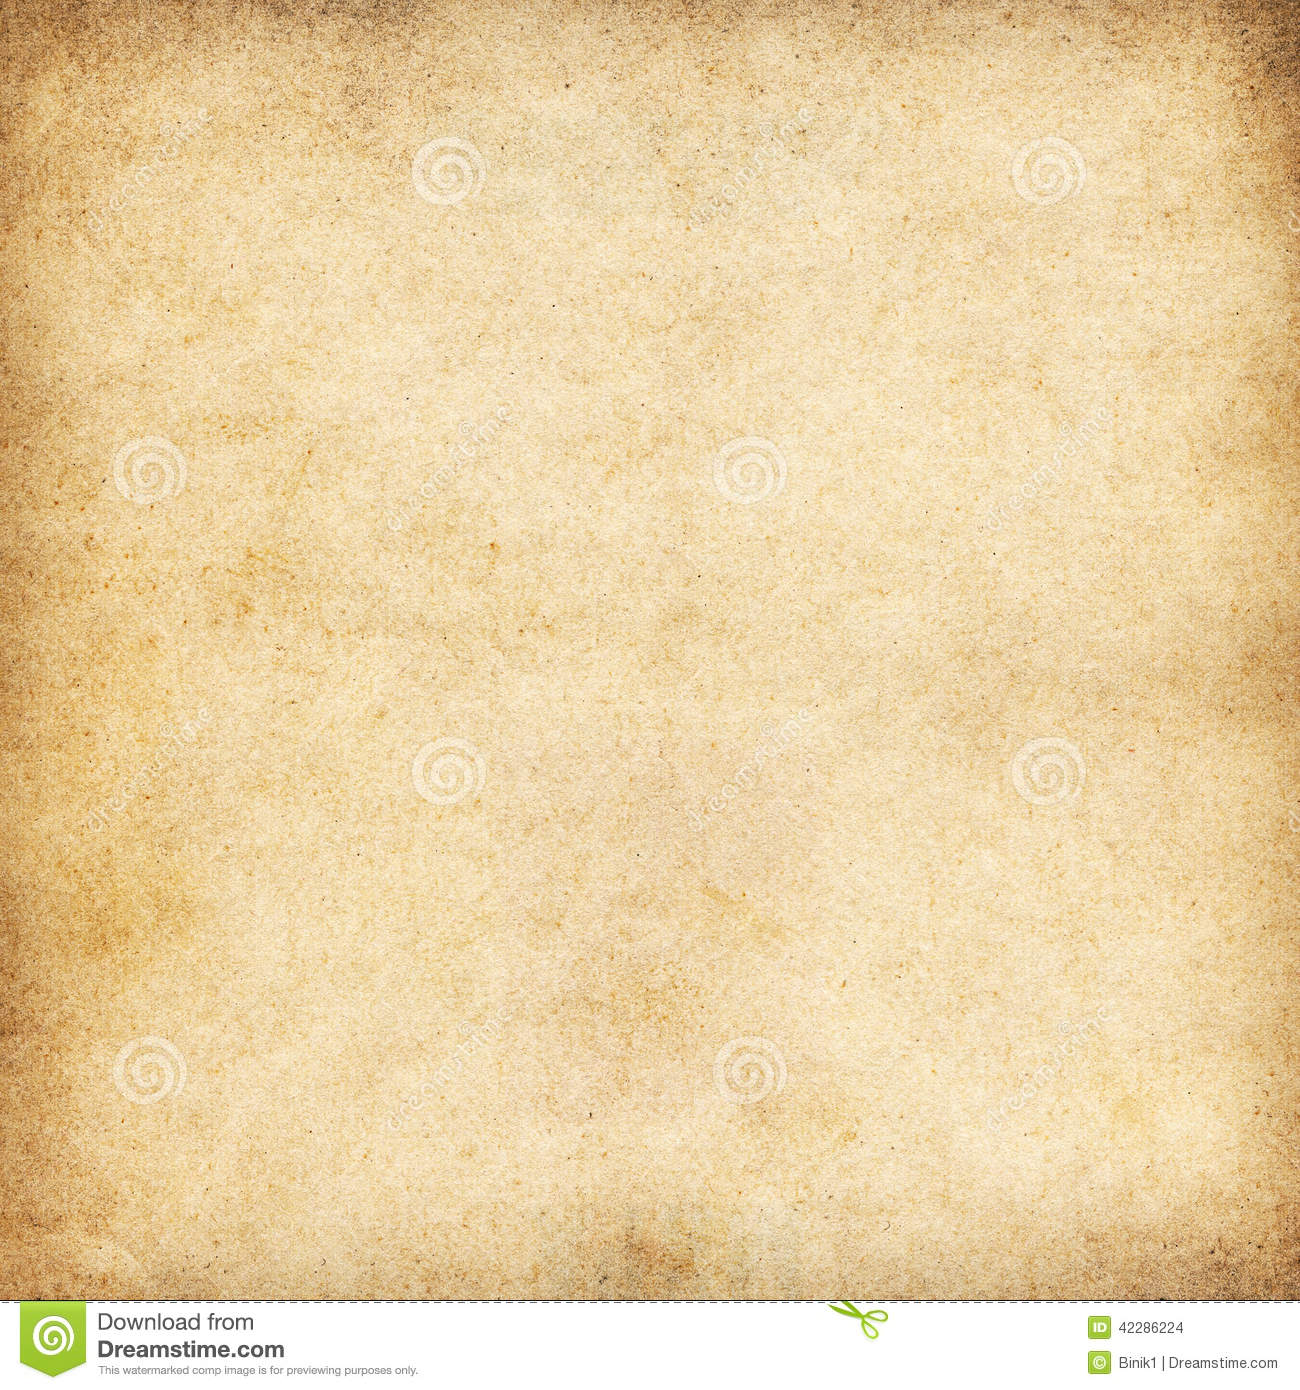 Vintage Beige Paper Texture Or Background Stock